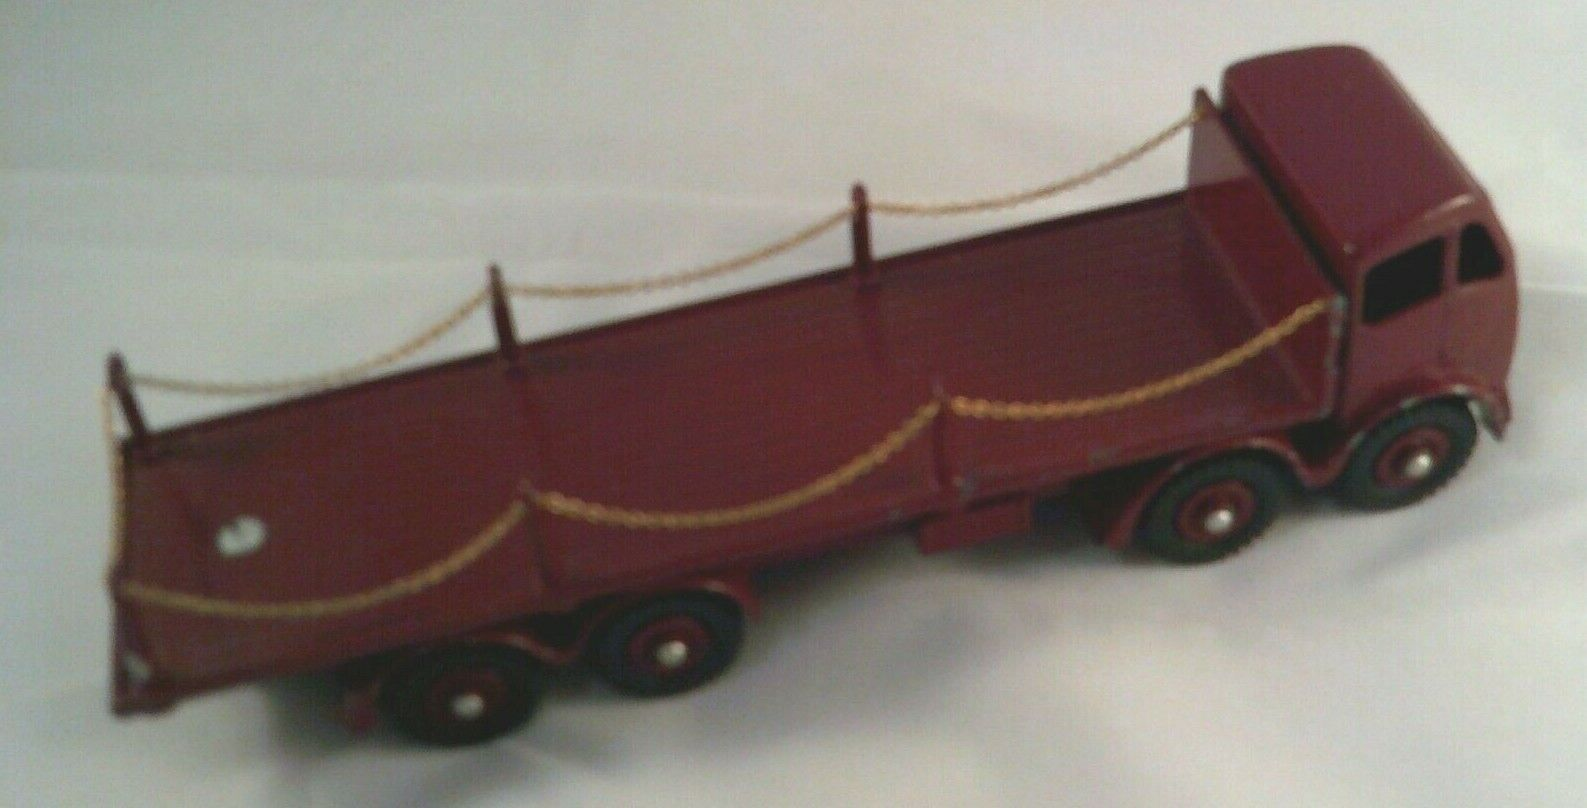 Dinky 905 Foden Chain Lorry. Sympathetic Repaint with some repro parts